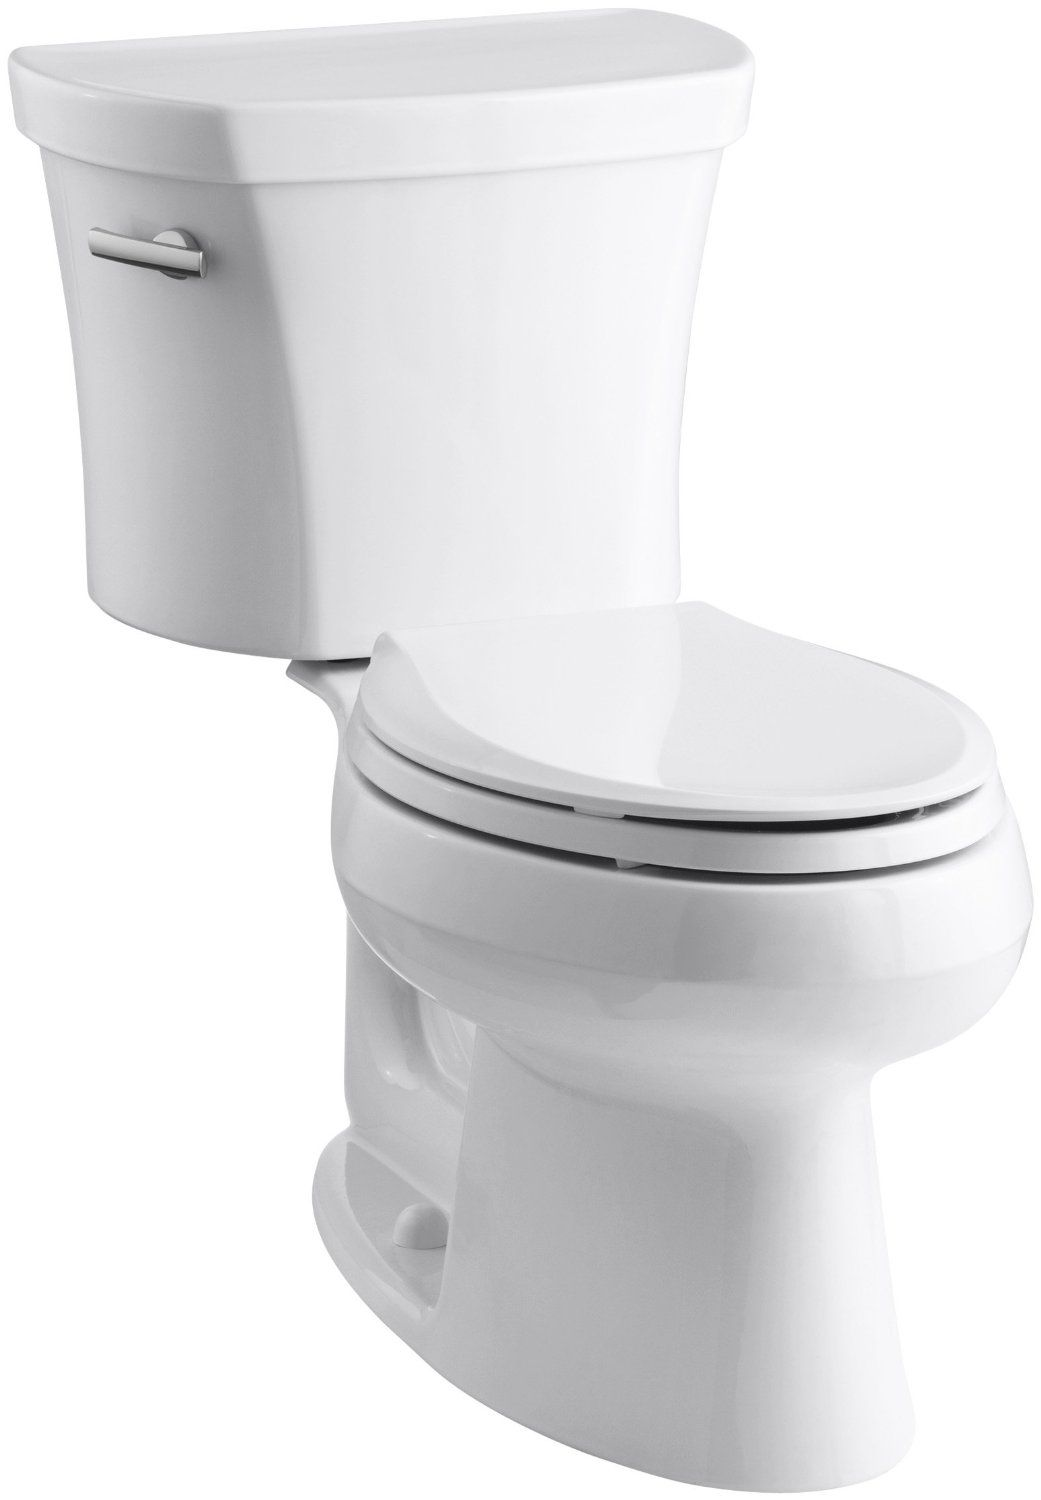 Kohler K 3948 0 Wellworth Elongated 128 Gpf Toilet 14 Inch Rough